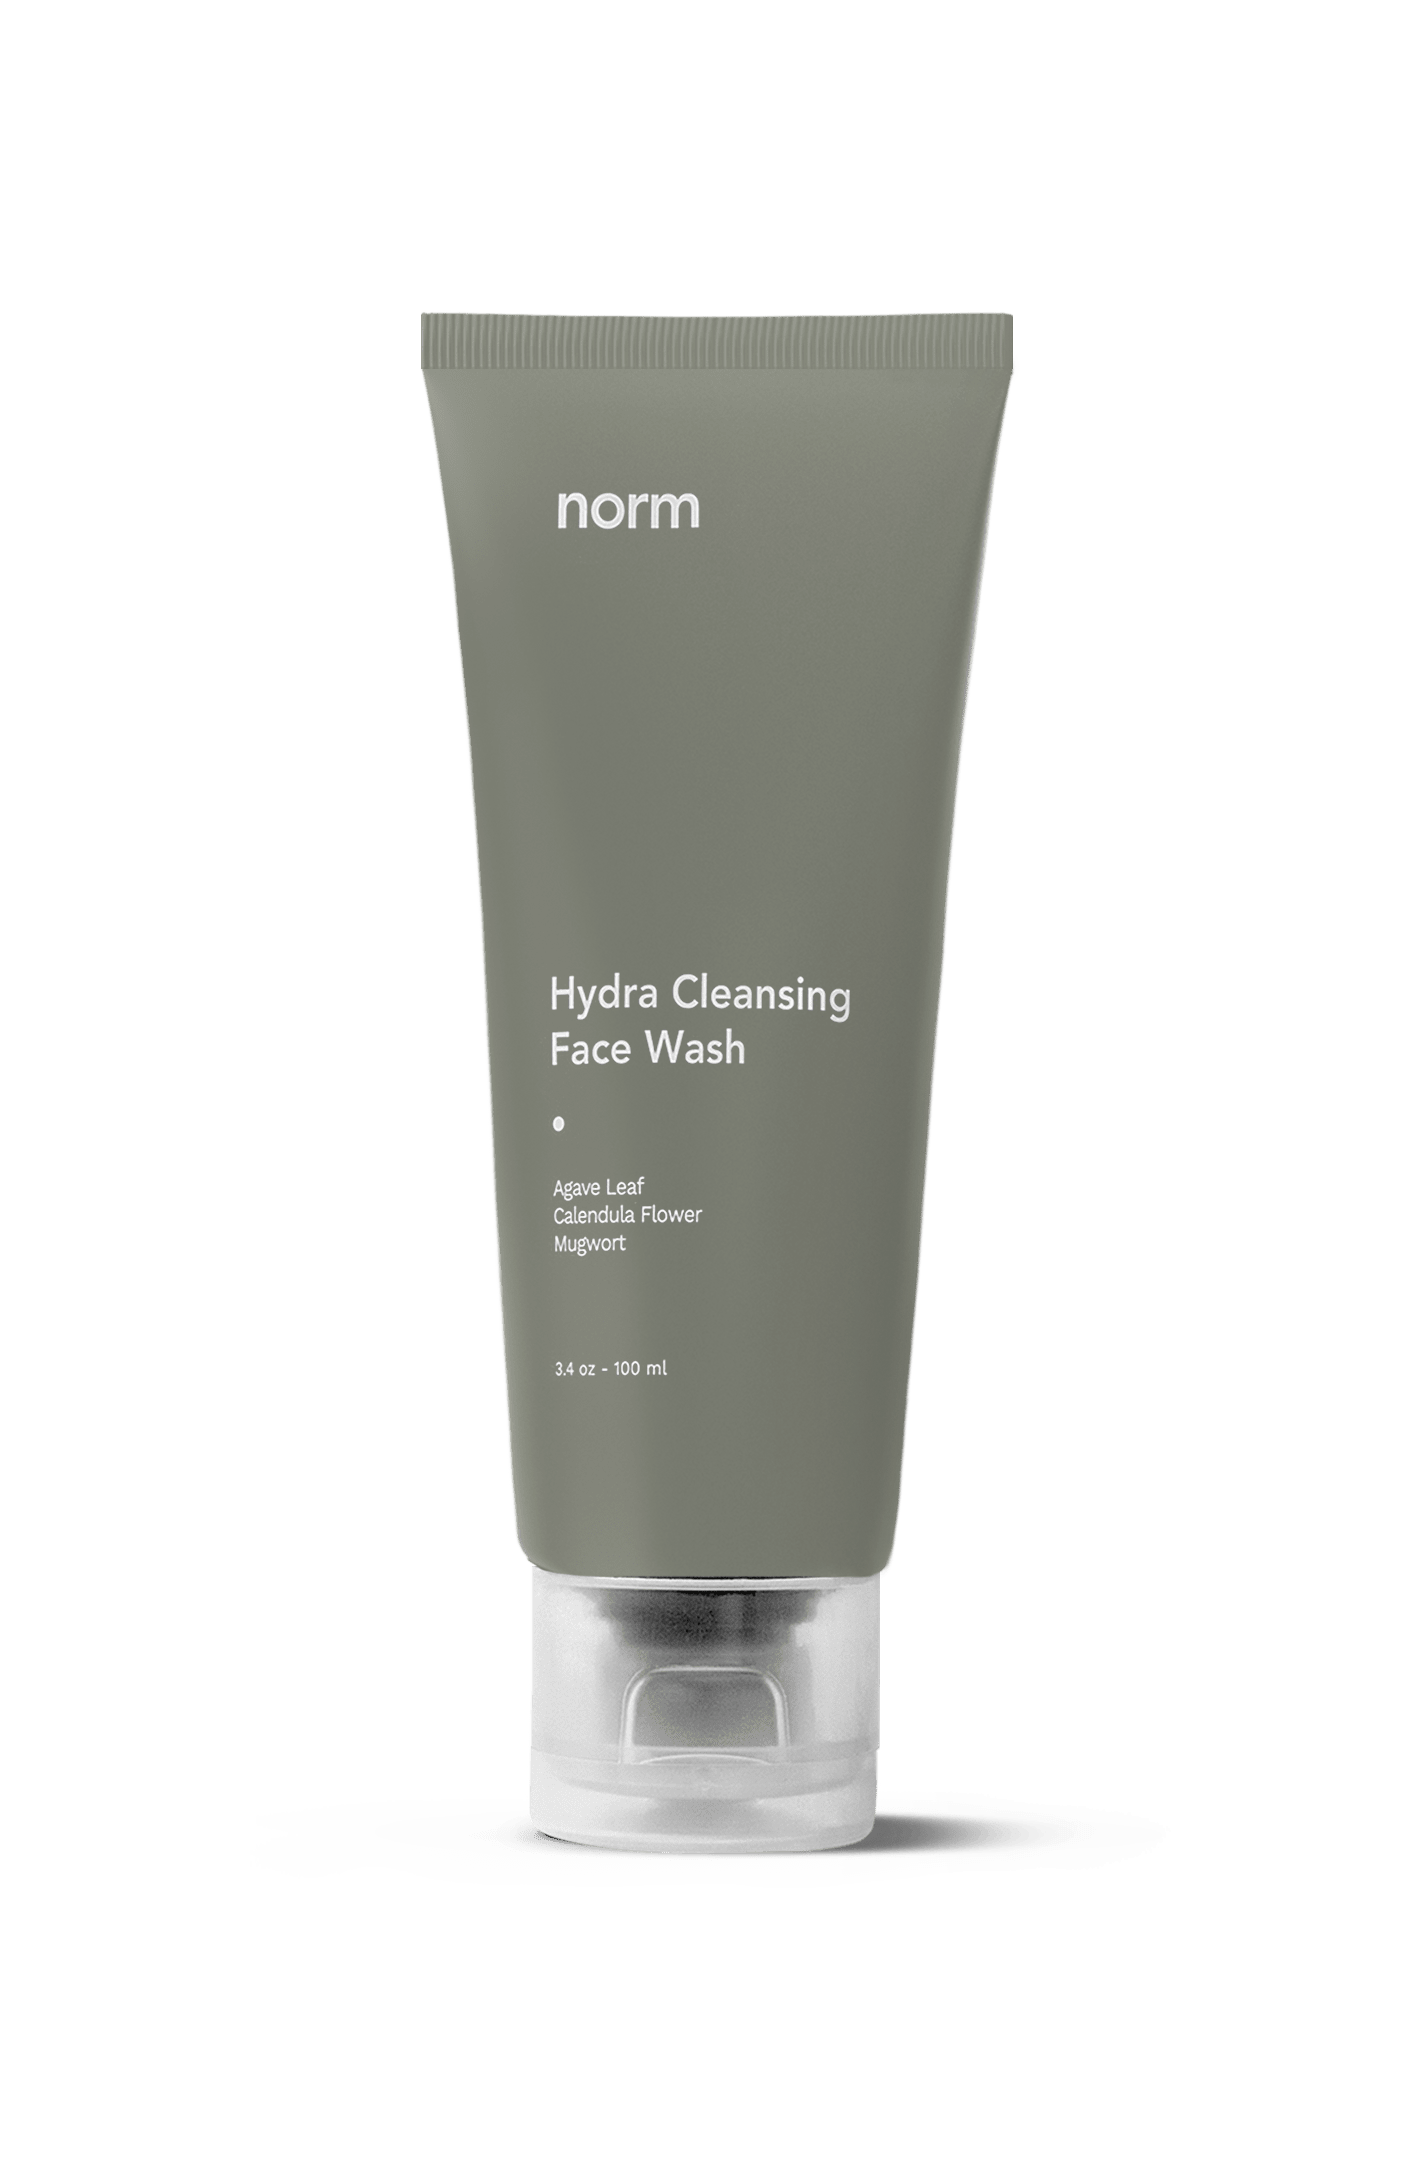 hydra cleansing face wash